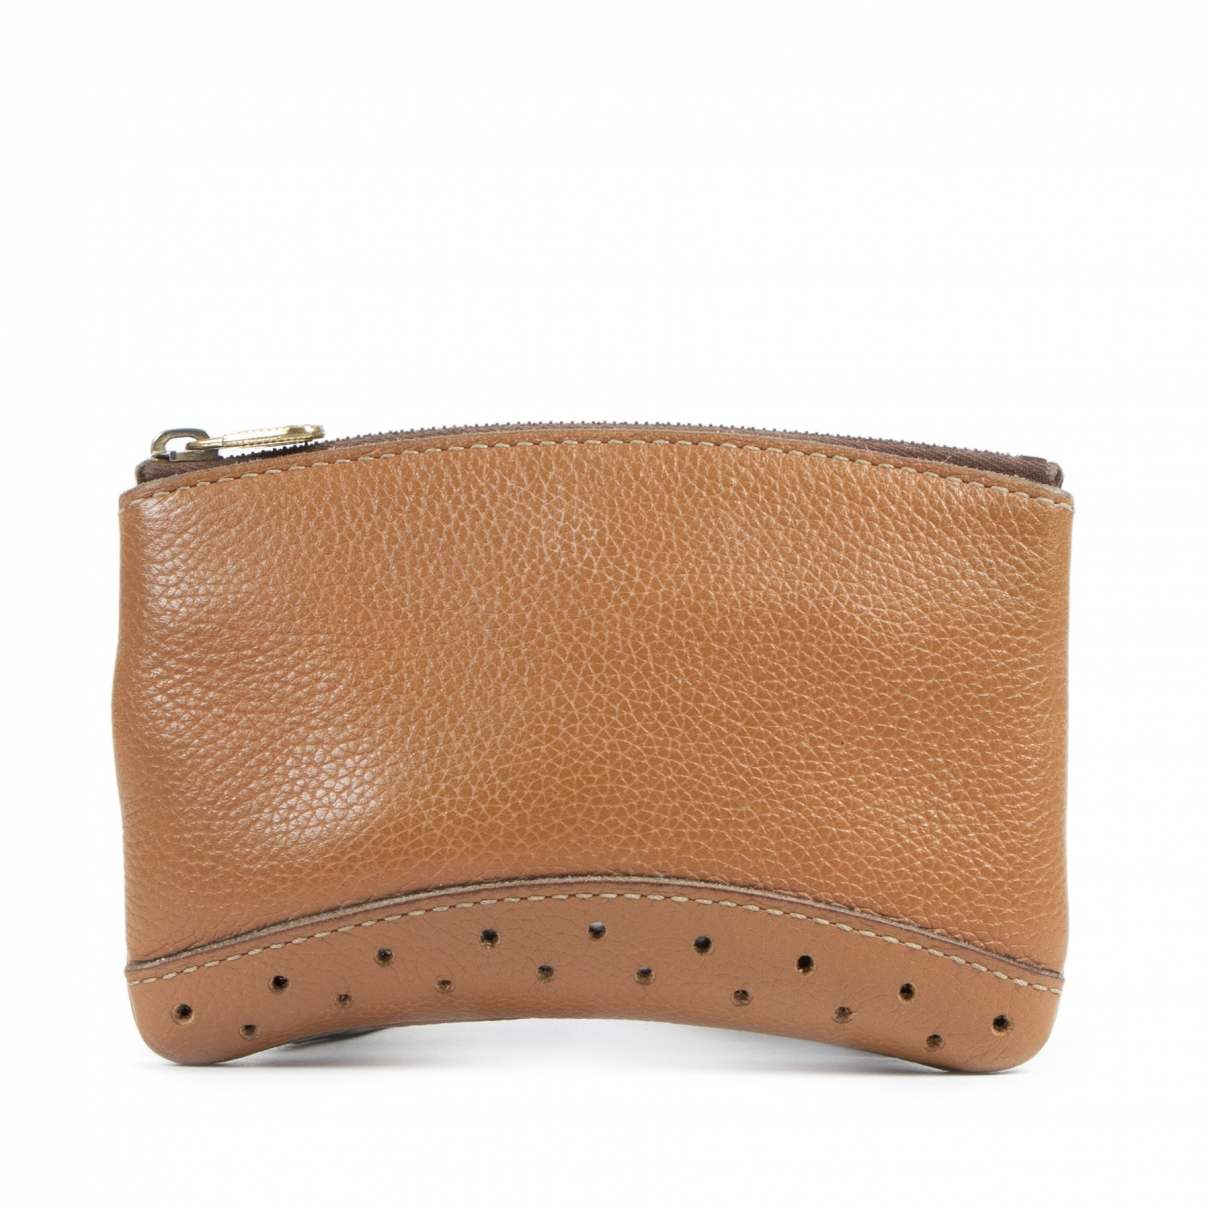 Delvaux \N Brown Leather Clutch bag for Women \N